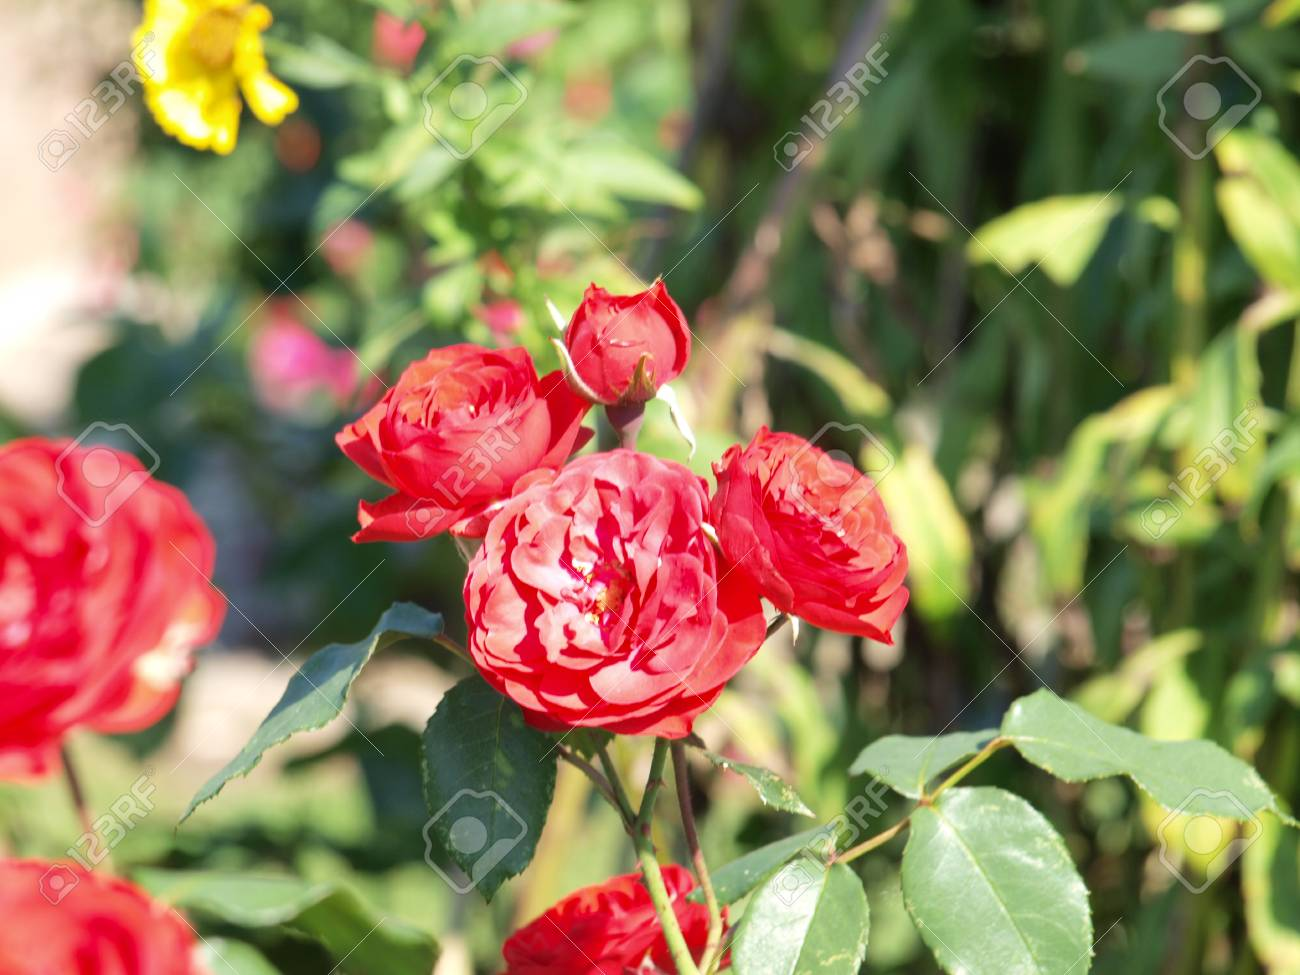 Rote Rosen Im Garten Stock Photo Picture And Royalty Free Image